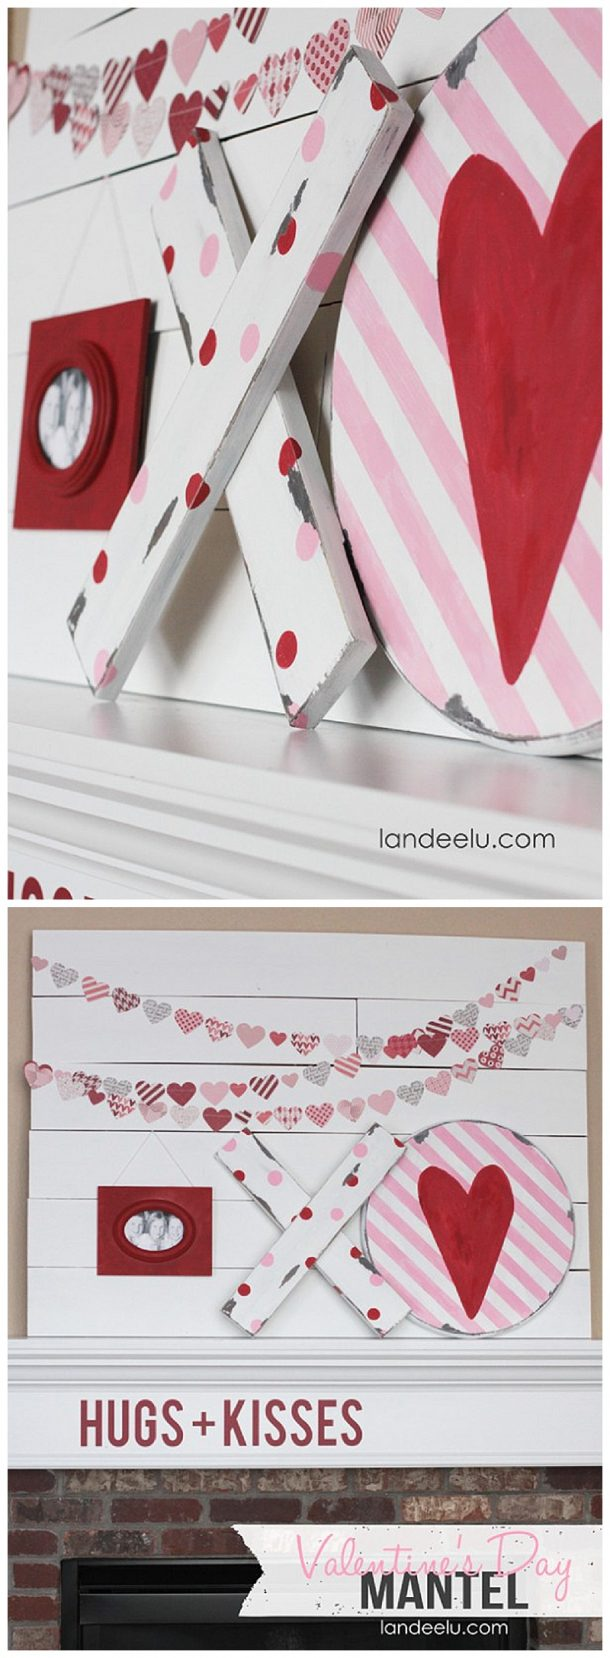 Valentine's Day Mantel: Hugs & Kisses Theme in Red, White and Pink | Love the DIY chippy XOs and heart garland!